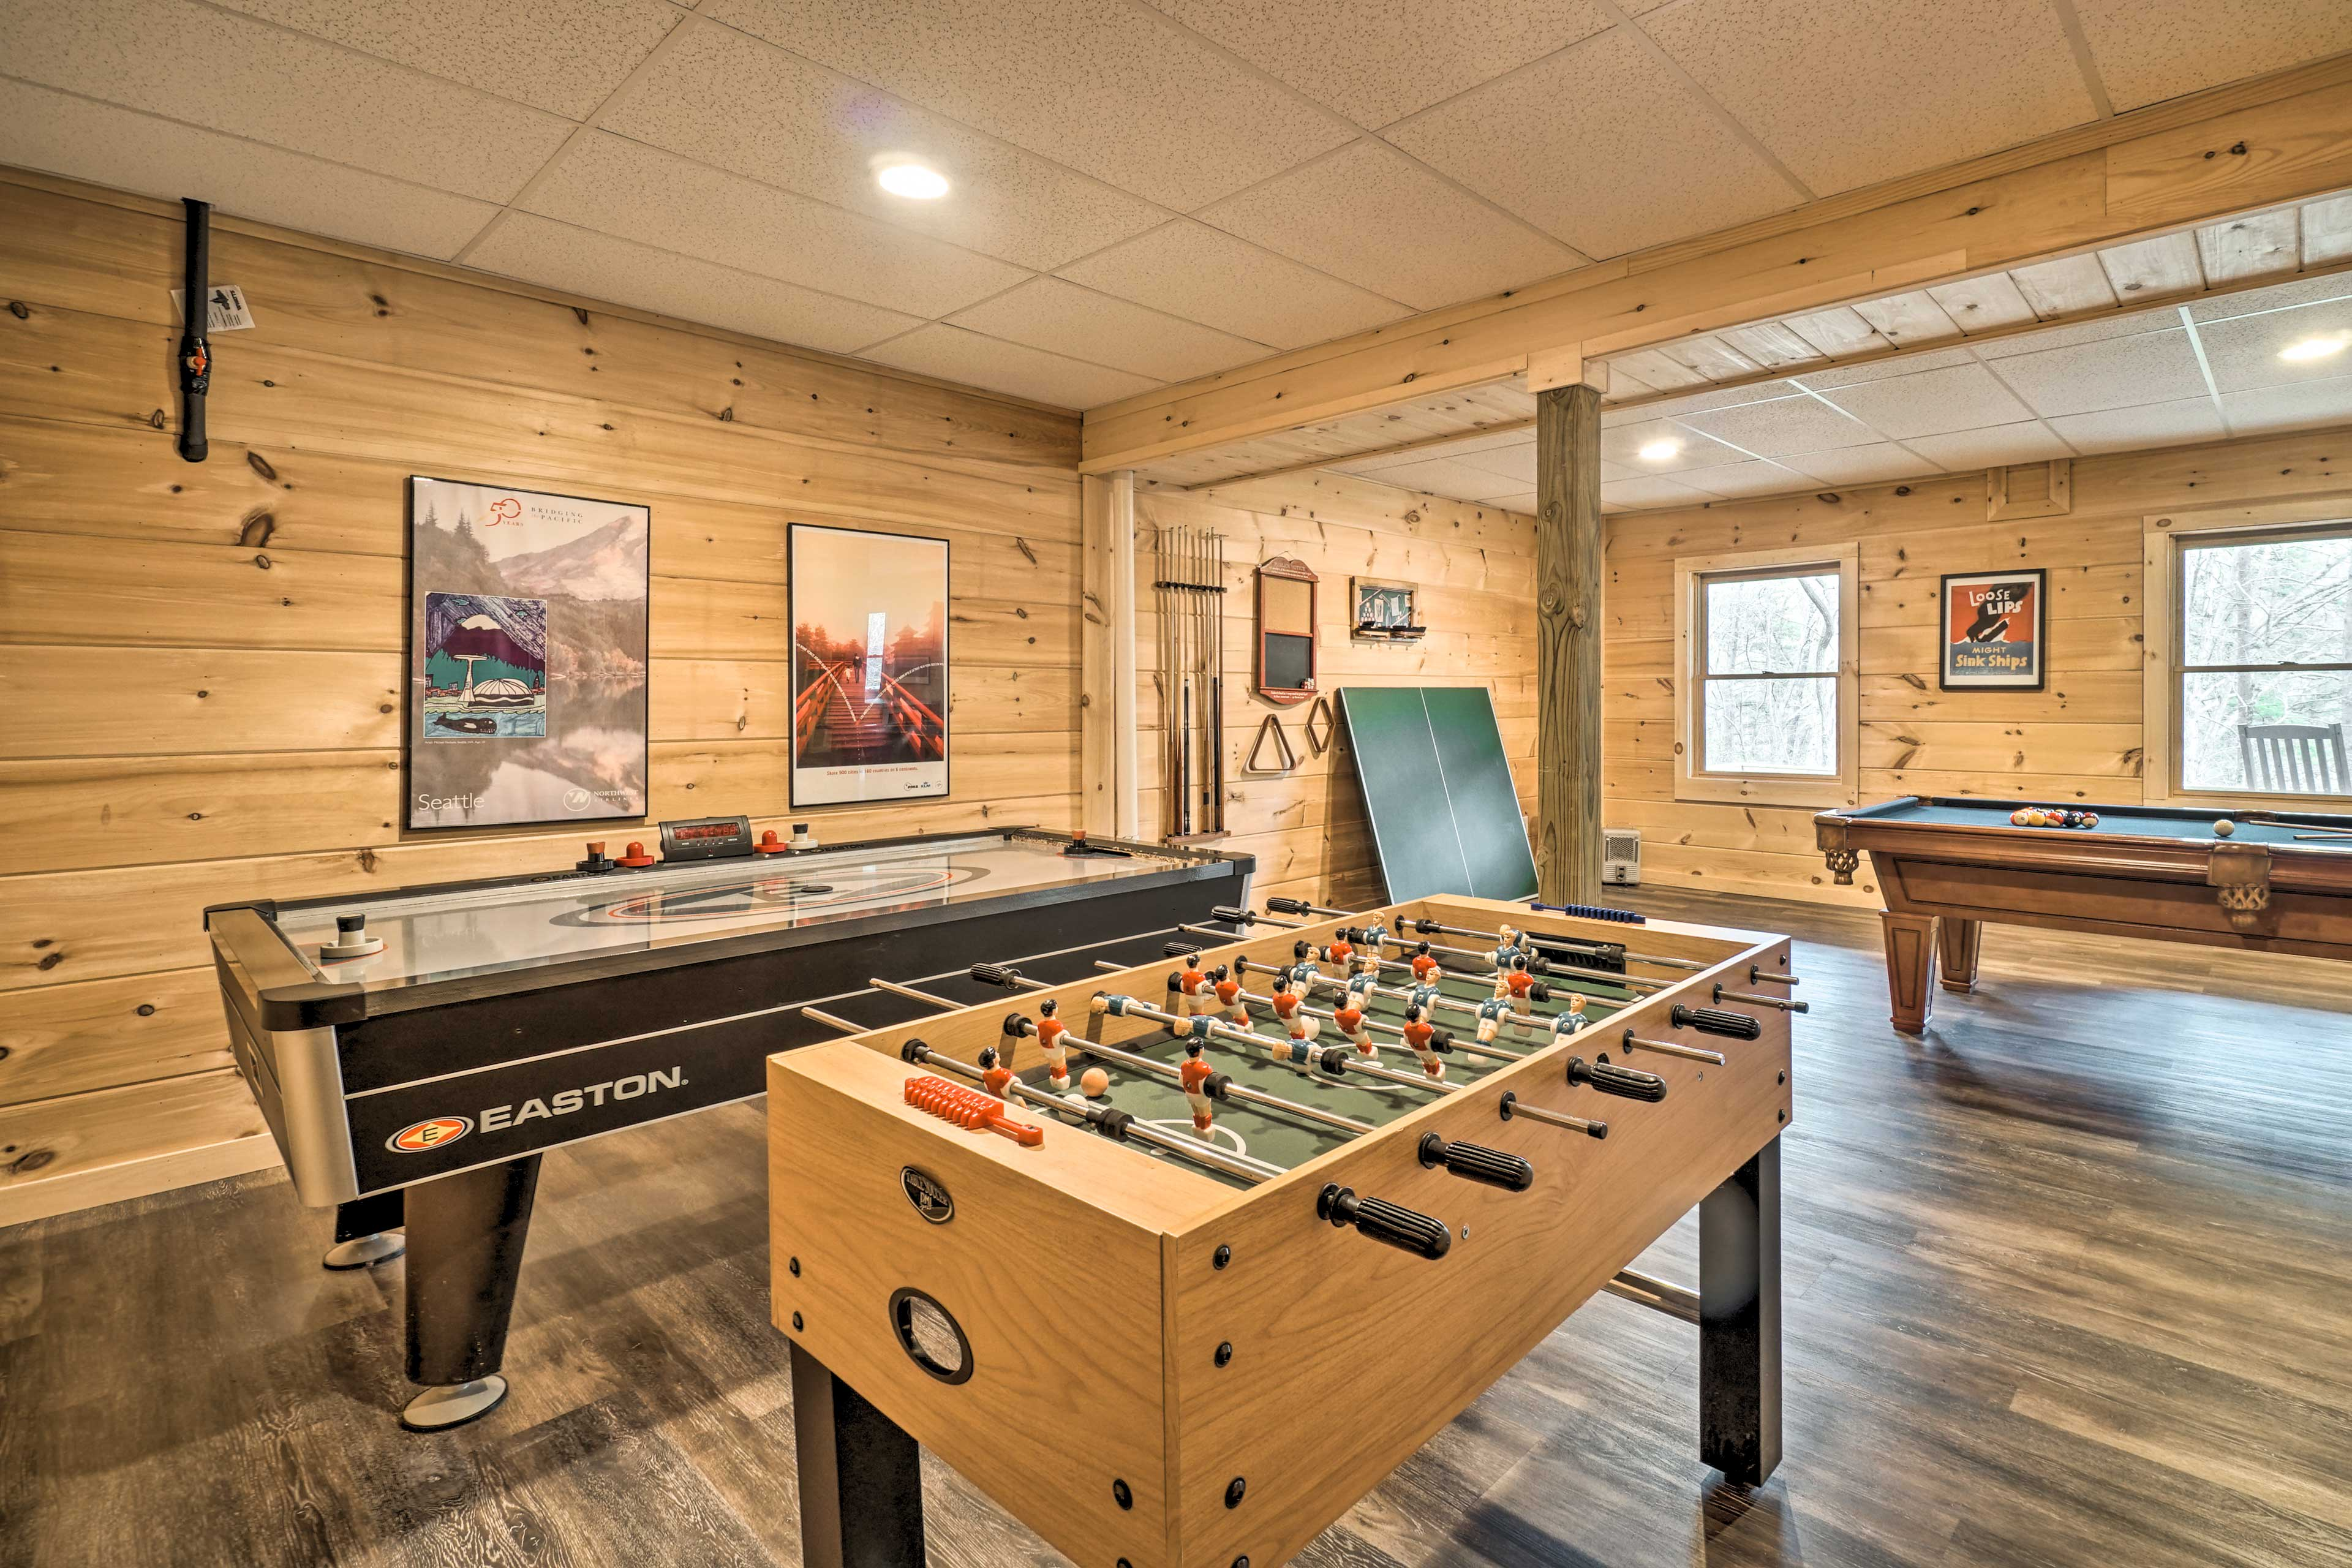 This game room also offers foosball and air hockey.